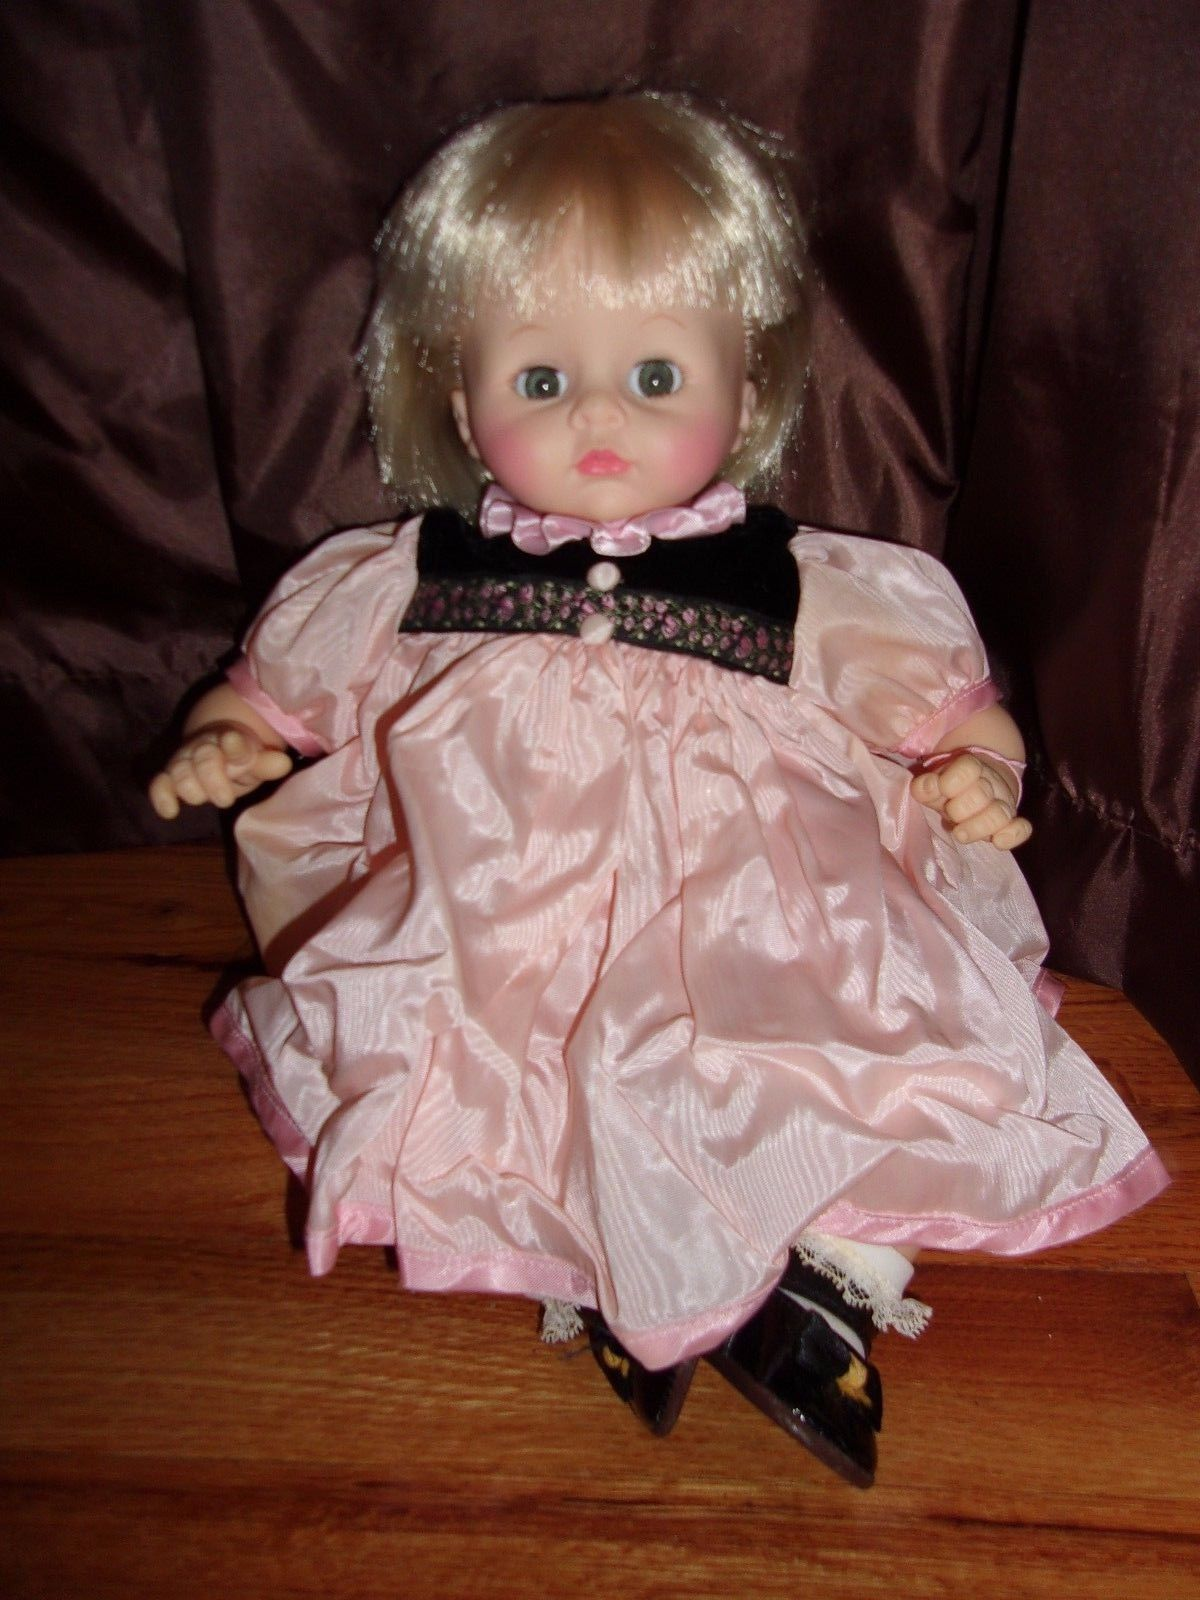 Uncategorized information about pussycat dolls - Vtg Madame Alexander 14 Pussy Cat Doll Blonde Hair Blue Pink Dress